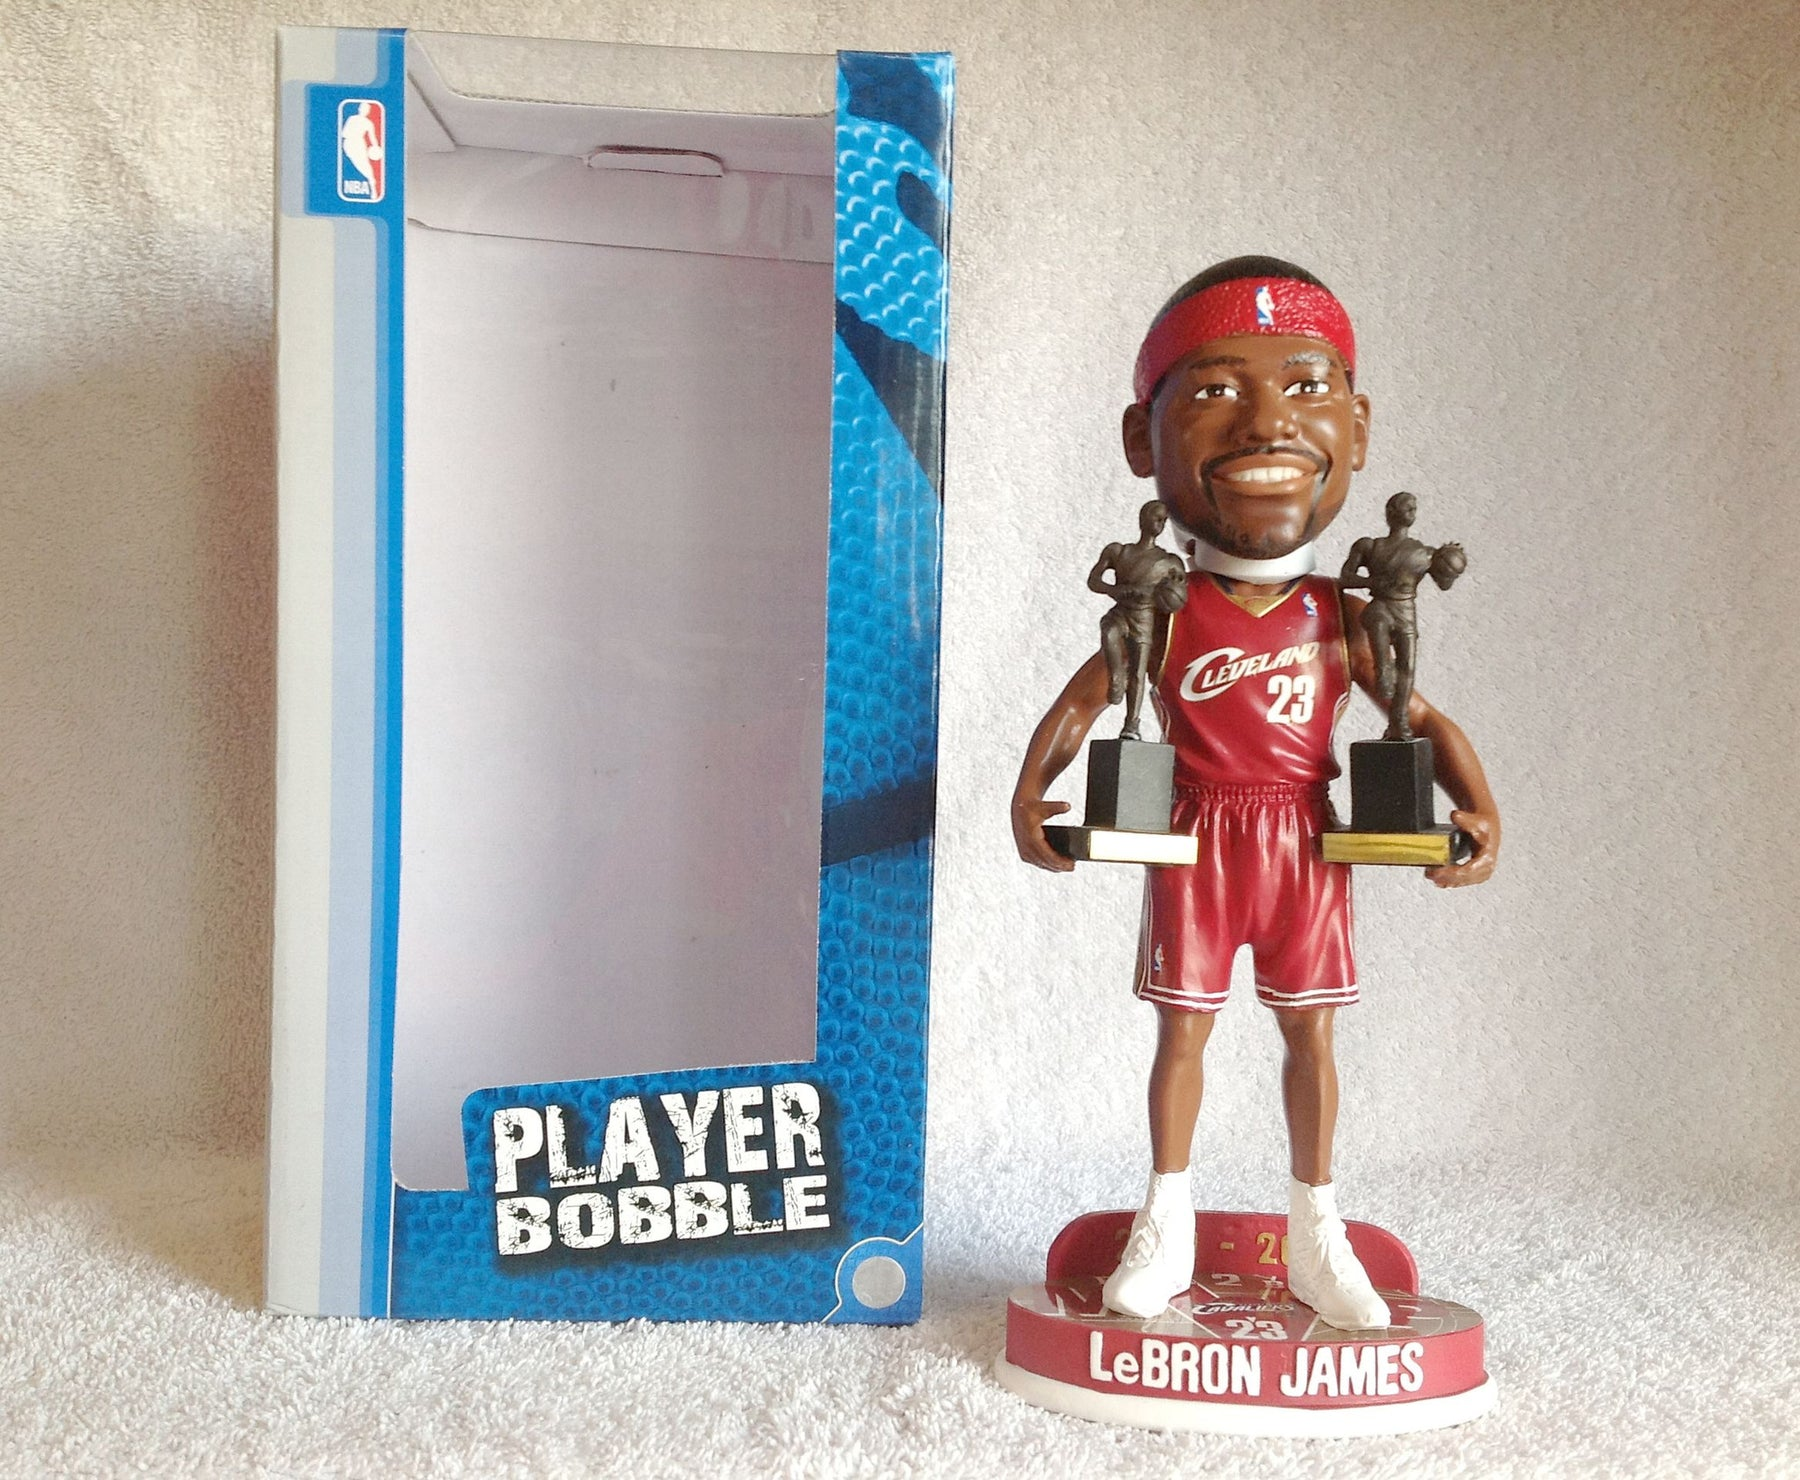 Lebron James Red Bobblehead - BobblesGalore